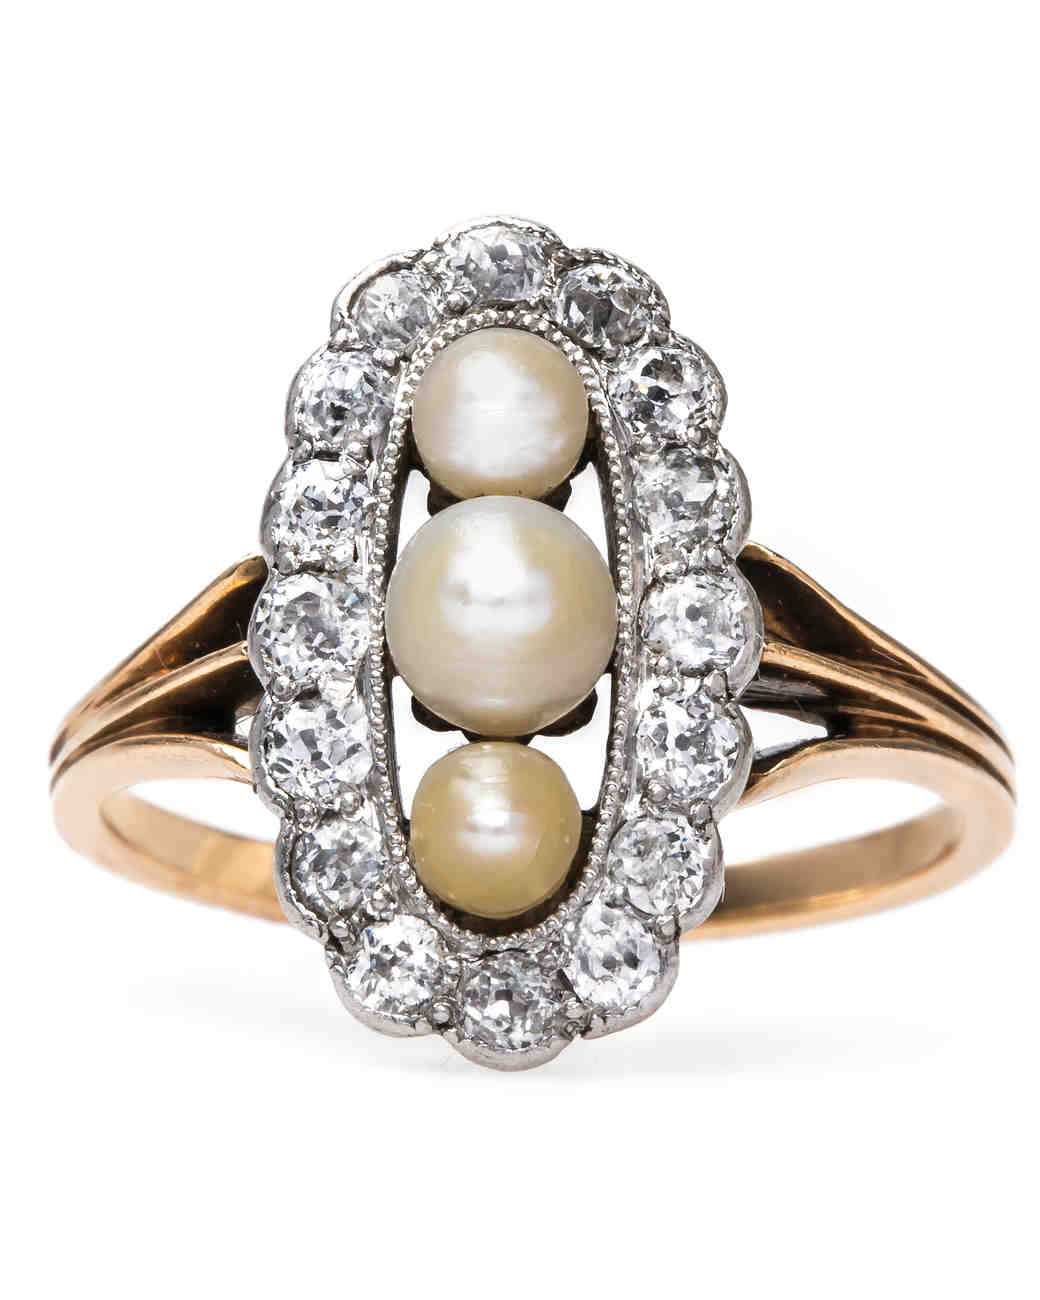 rock pearl progressive side gellner white tahitian rings engagement diamond products gold lobster ring